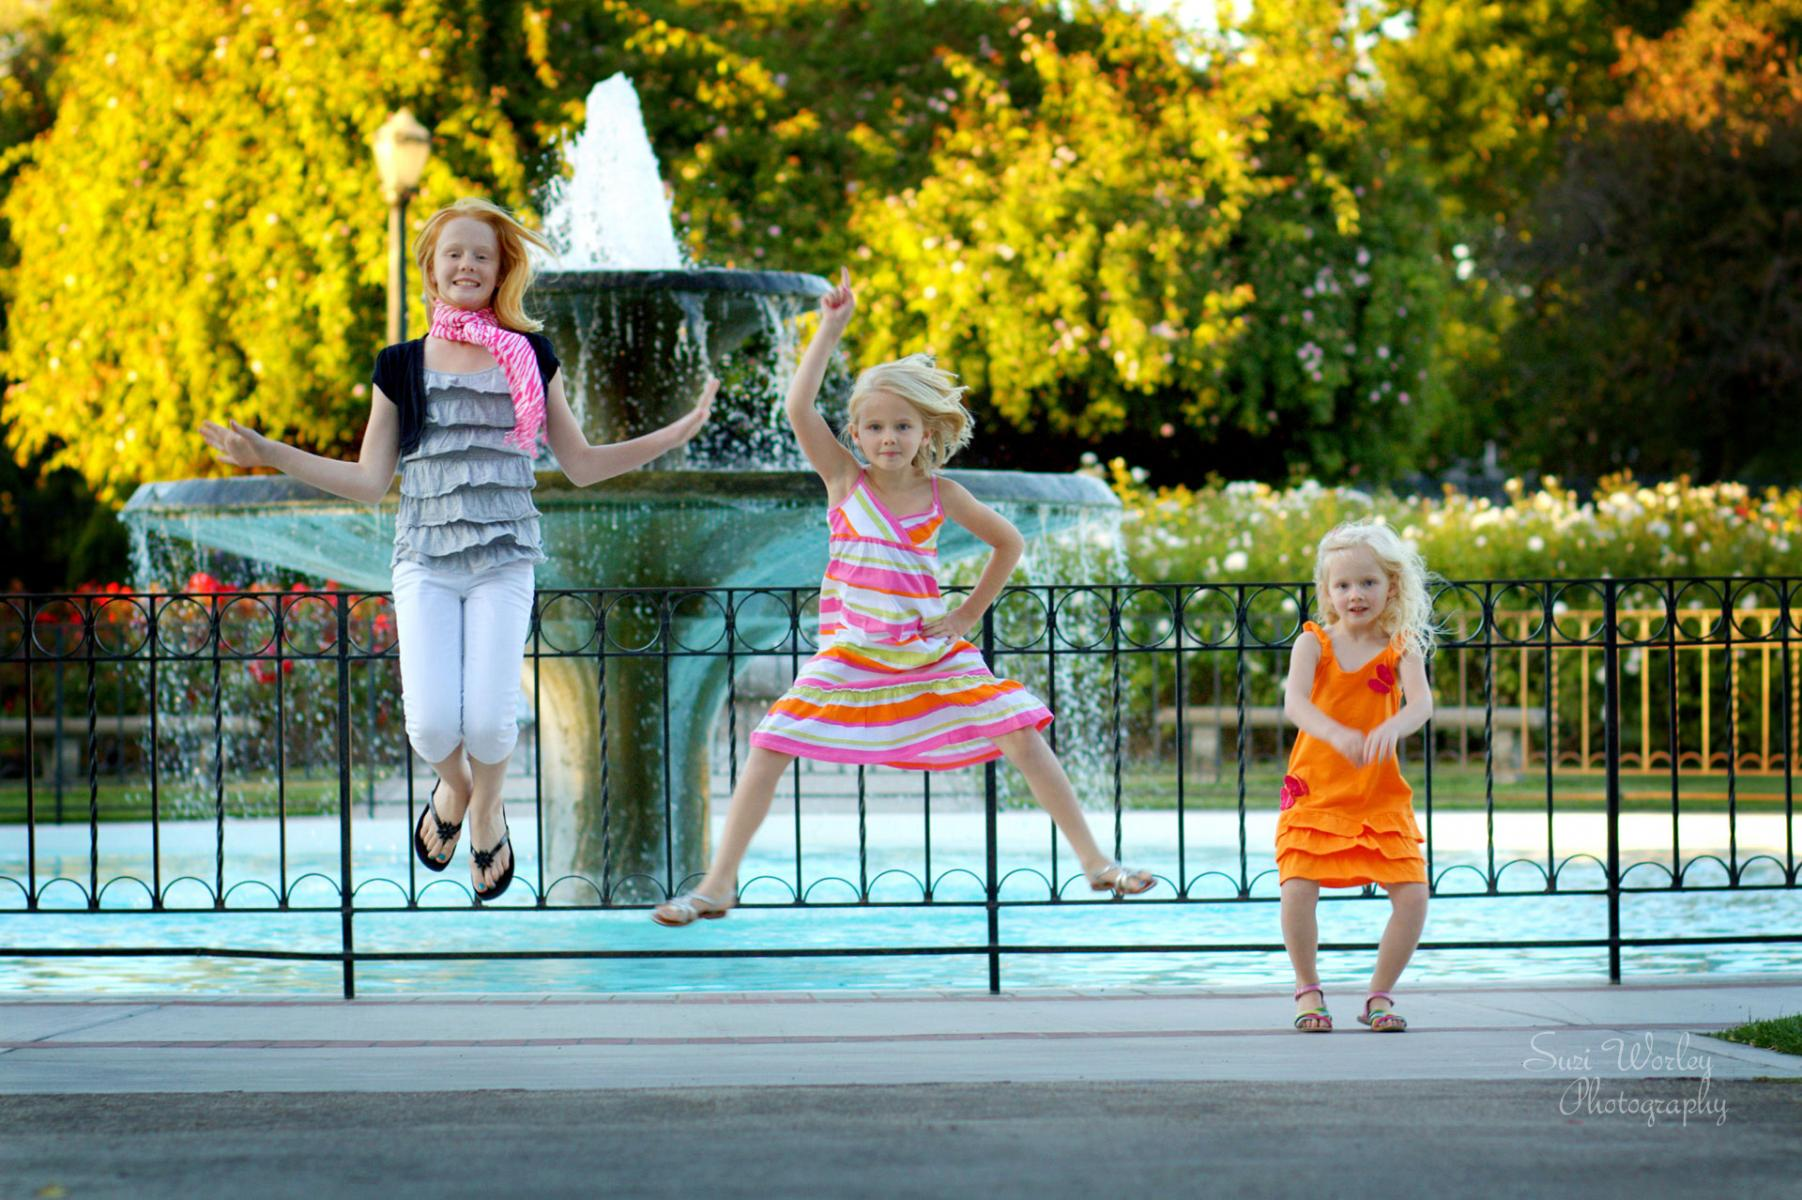 Jump!   #SpringPhoto #SuziWorleyPhotography #Portraits #girls #jump #family #fountain